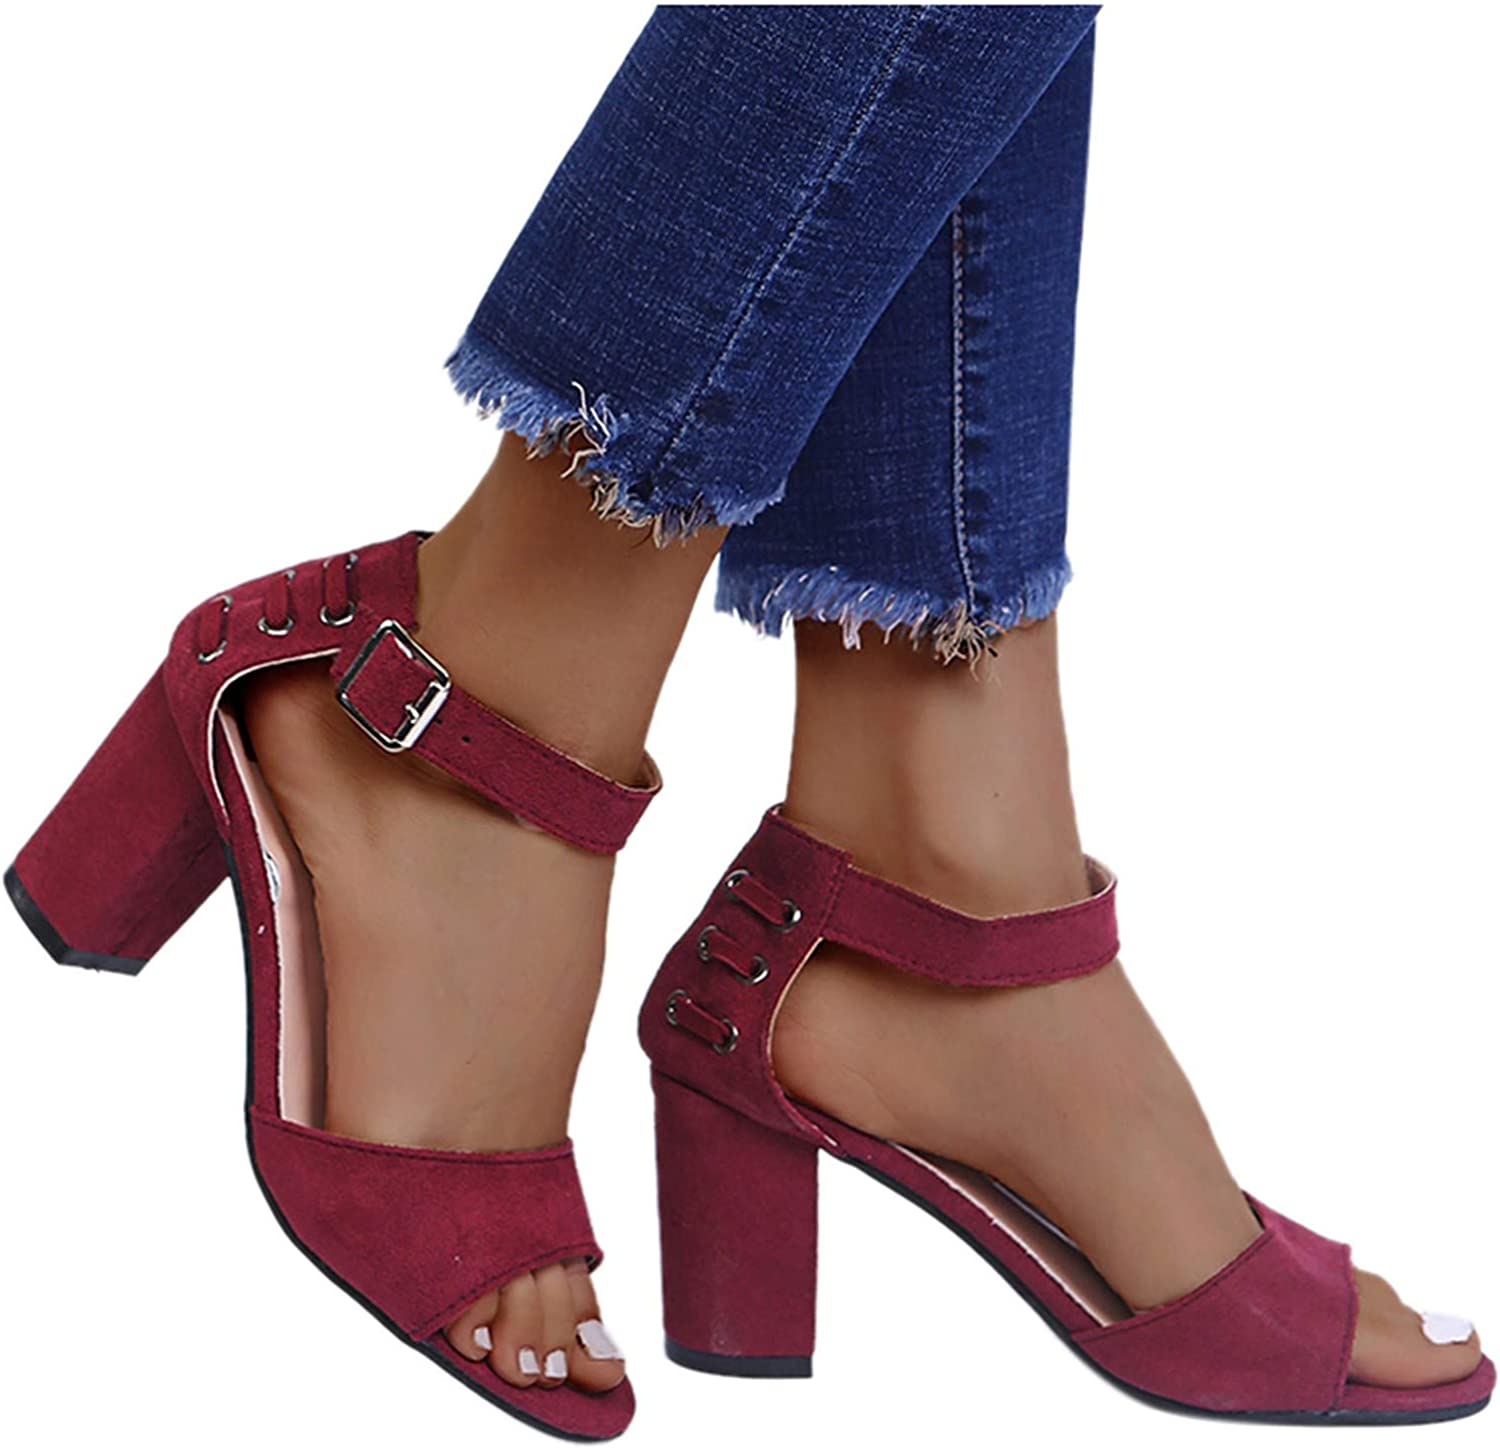 Hgndbloo Financial sales sale High Platform Sandals New Shipping Free Chunky Heels Slippers Pointed Toe